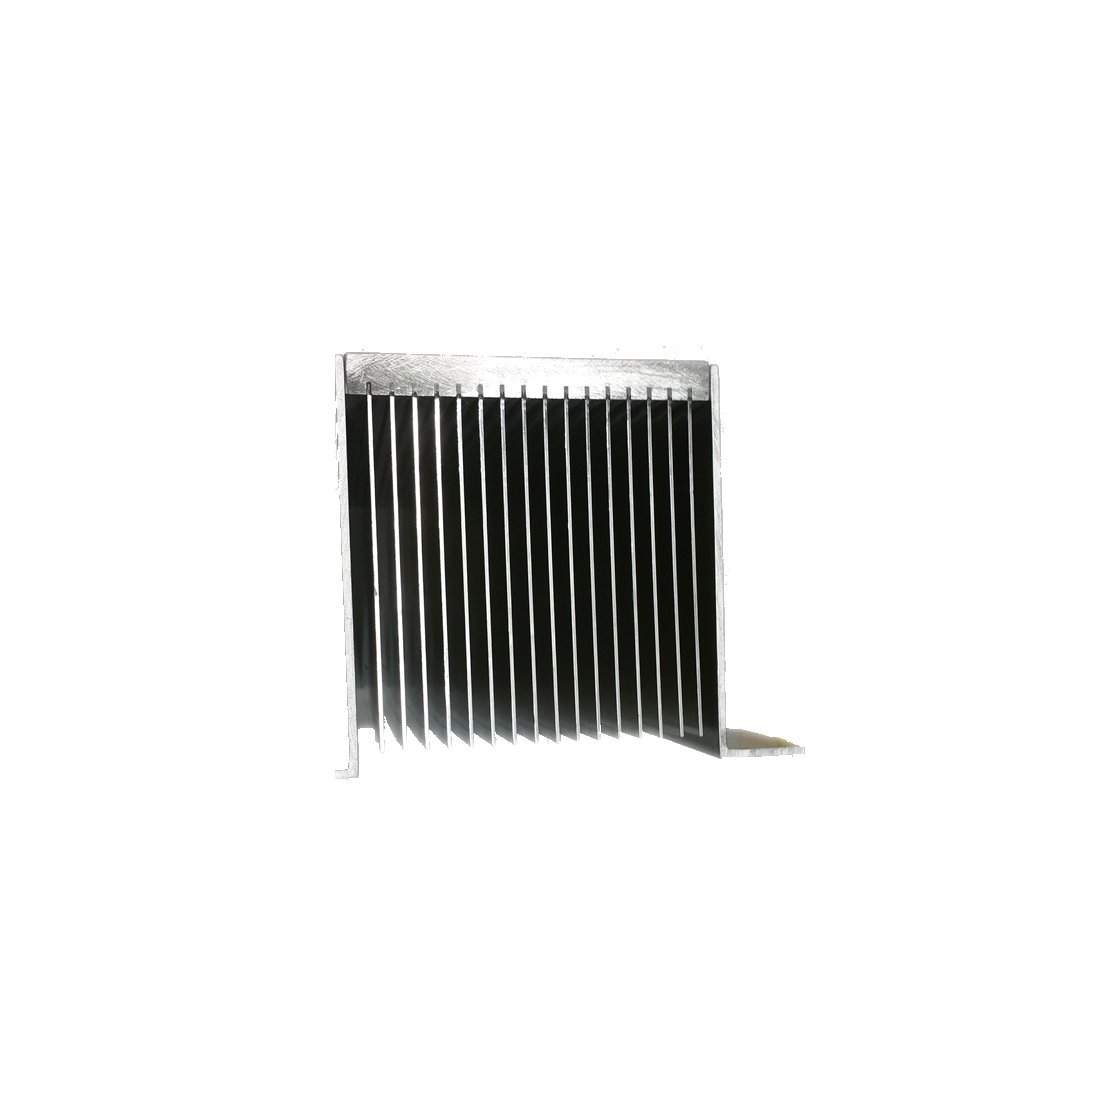 """12"""" inch Aluminum High Power Bonded Fin Heat Sink Assembly for Natural or Forced Air Convection – 16 Fin with Mounting Brackets by Machtron (Image #4)"""